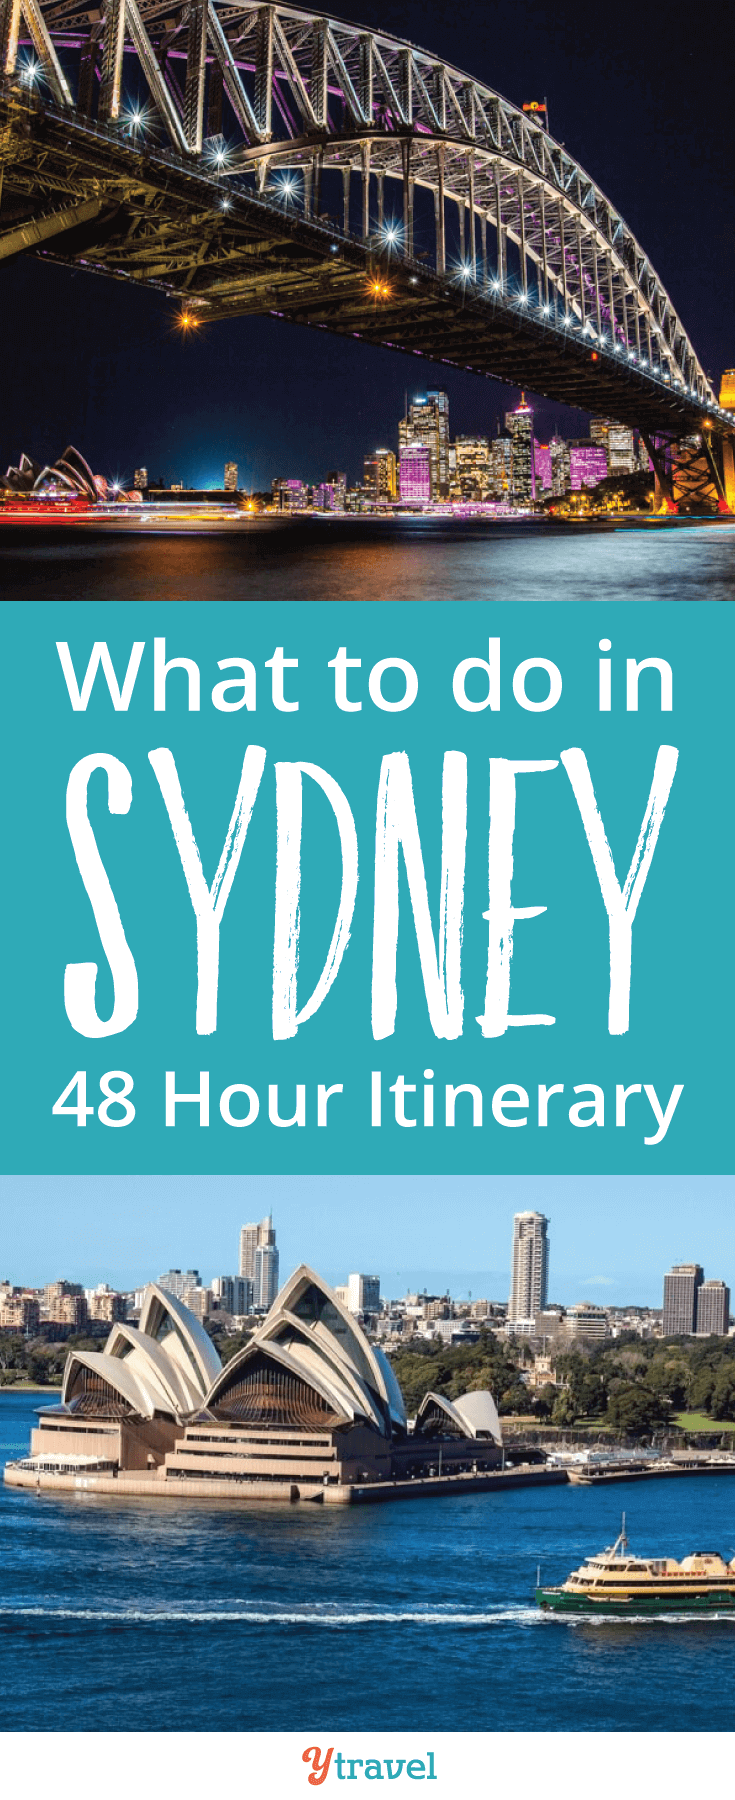 Are you on the hunt for what to do in Sydney if you've only got 48 hours? We've rounded up a great list of things to do in Sydney to make the most of your short trip!